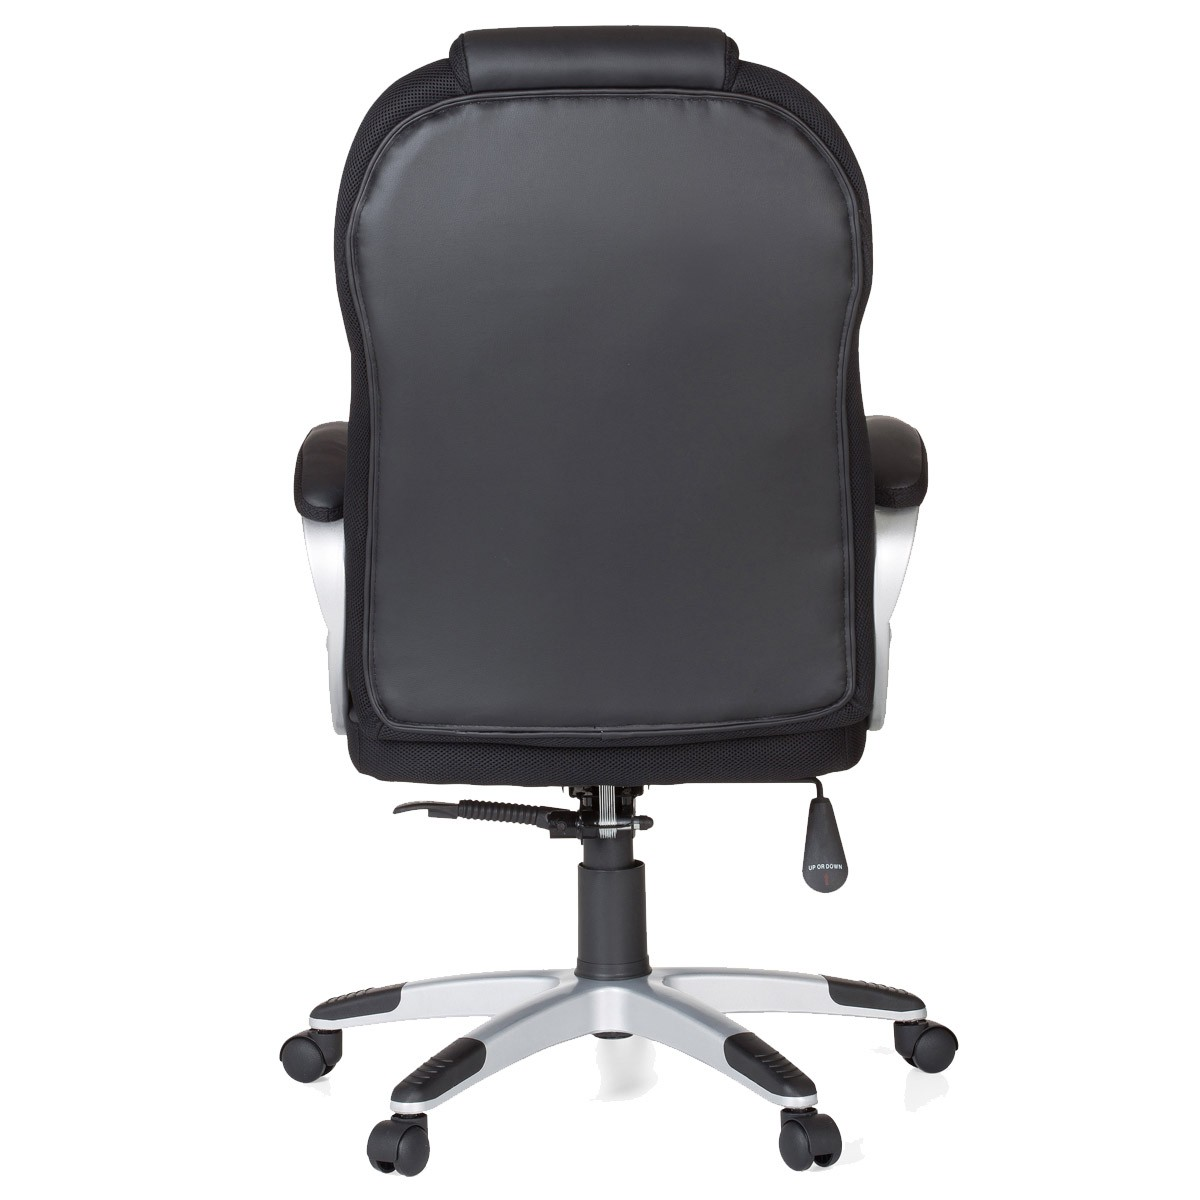 Finebuy office chair sport gaming executive chair racer for Bester chefsessel